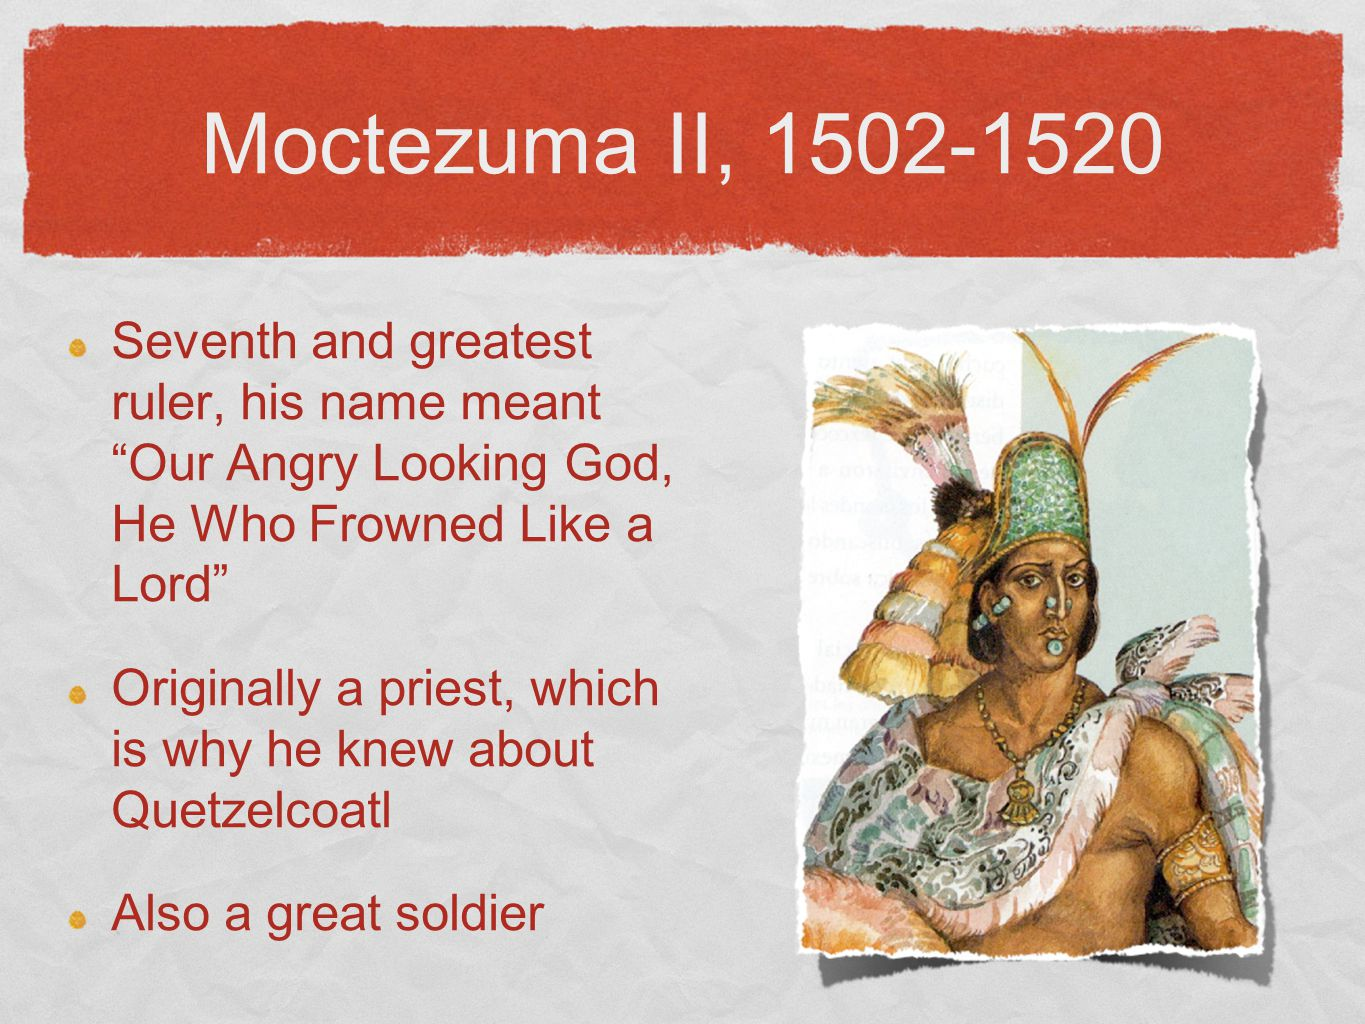 """Moctezuma II, 1502-1520 Seventh and greatest ruler, his name meant """"Our Angry Looking God, He Who Frowned Like a Lord"""" Originally a priest, which is w"""